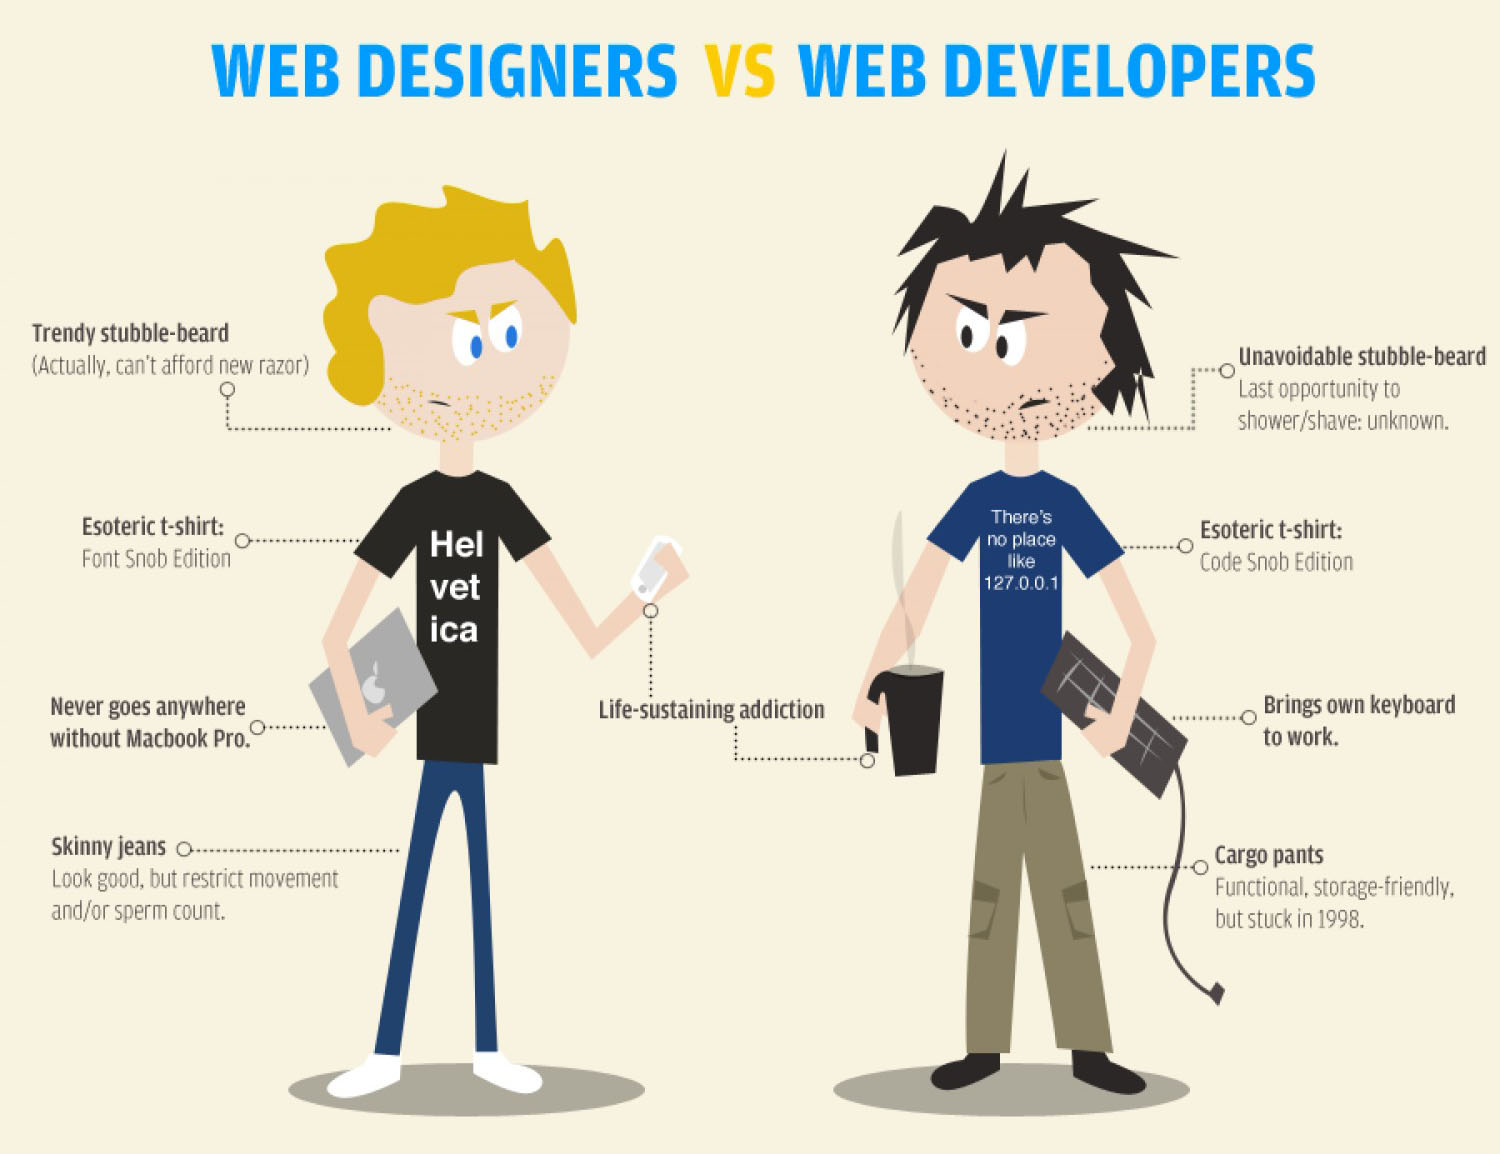 web-designer-vs-web-developer.jpg